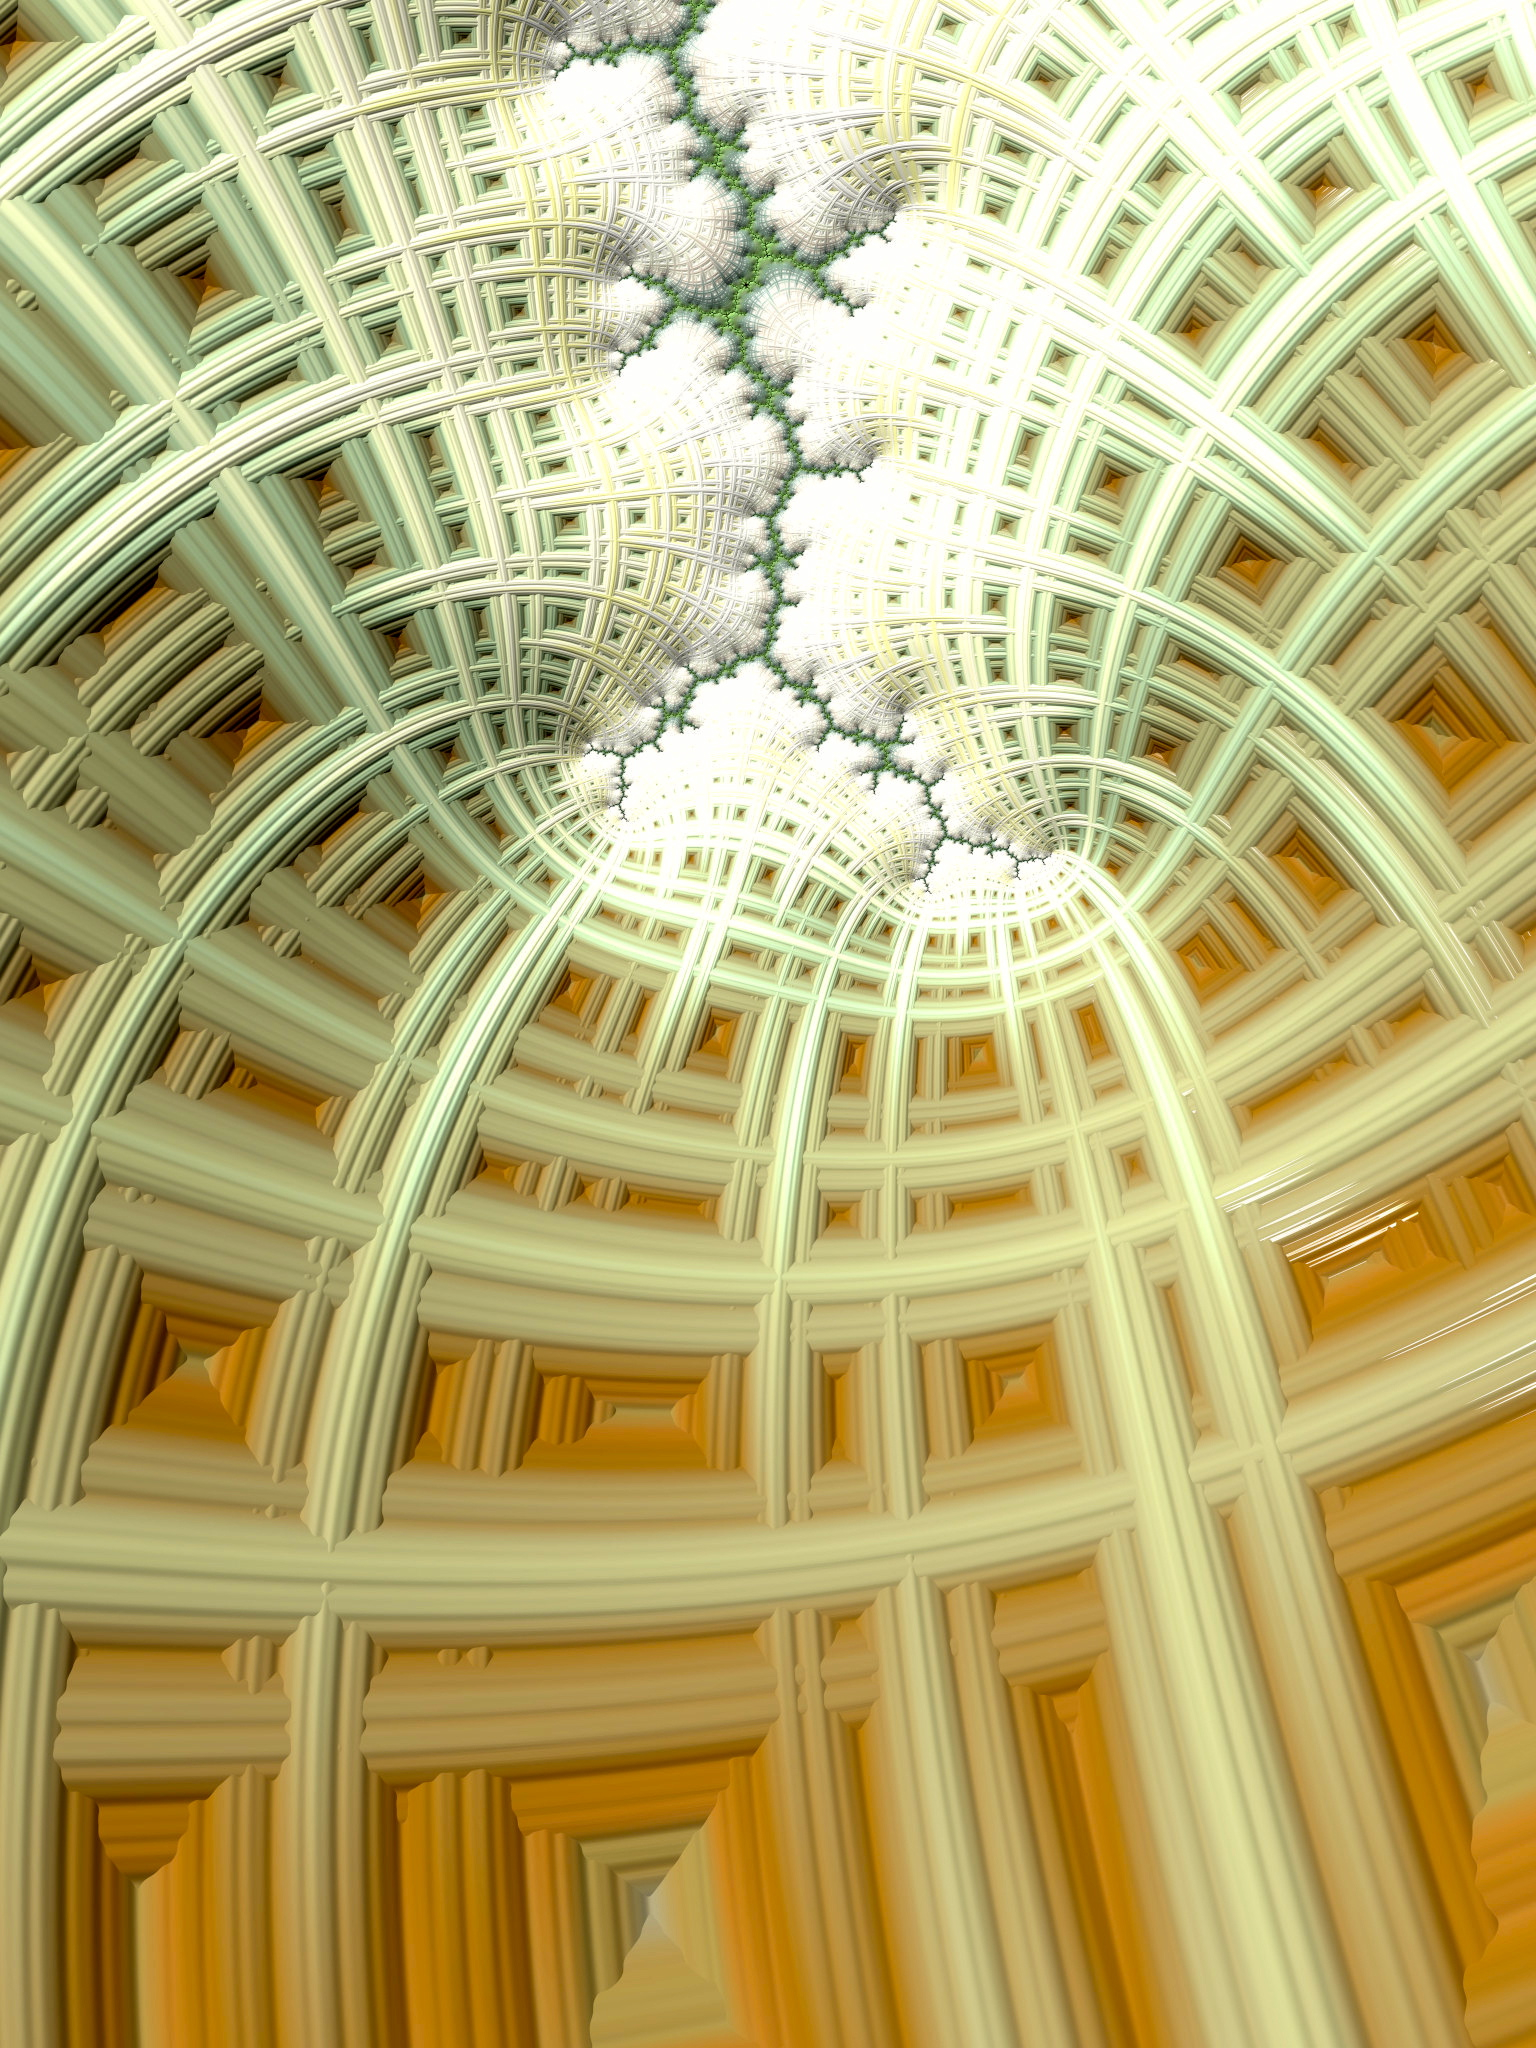 Cracks in the Ceiling by KateHodges